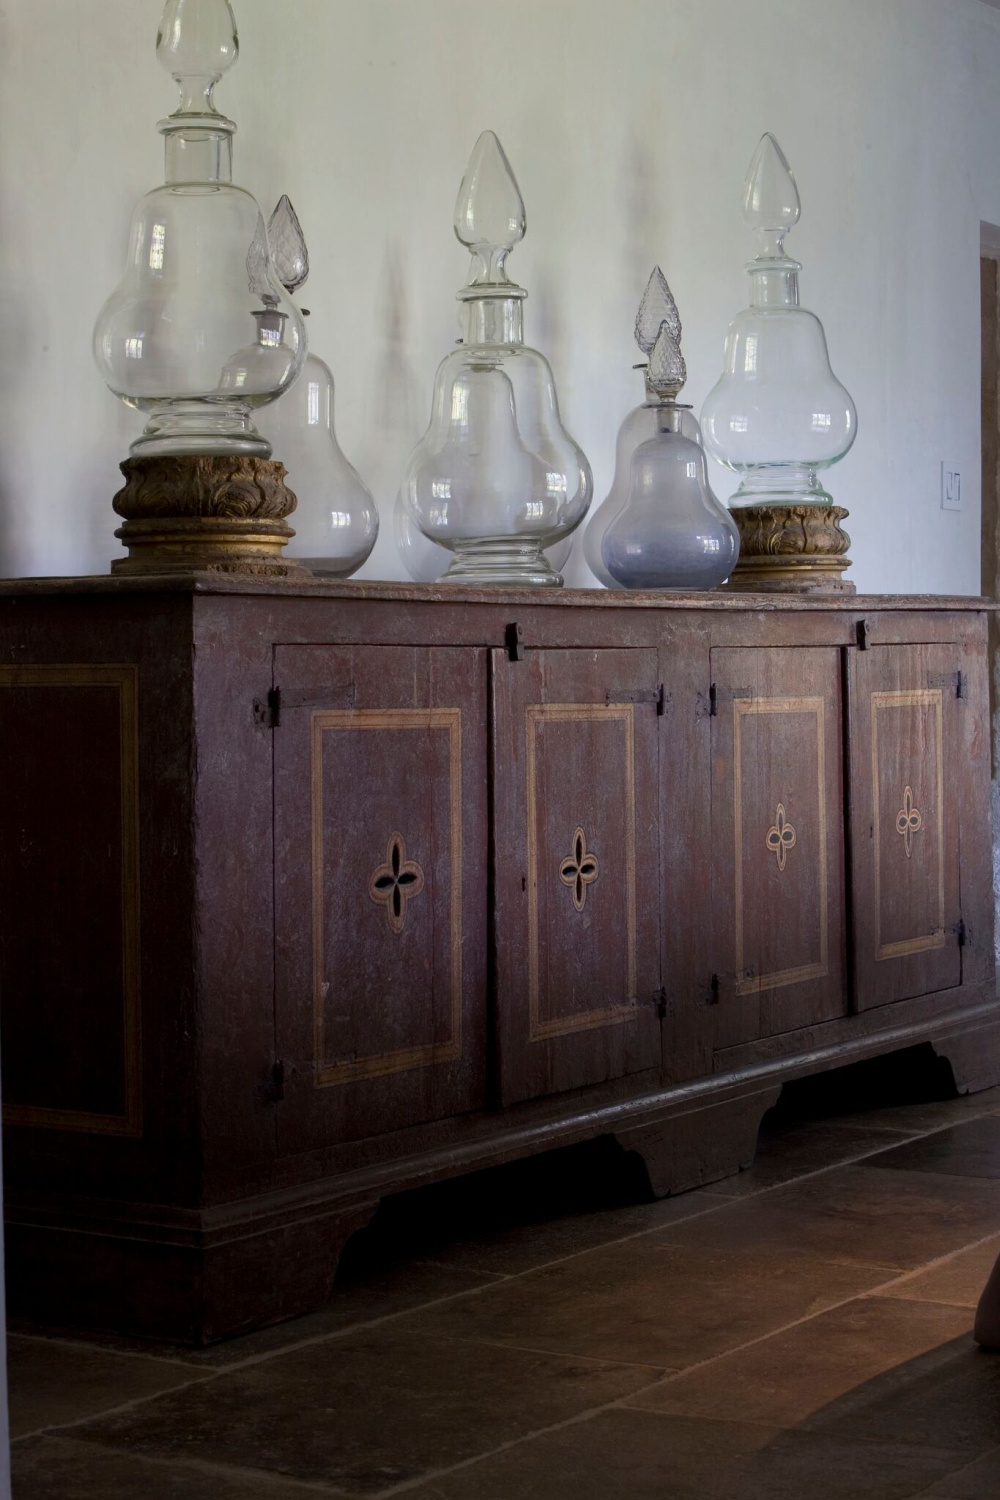 Magnificent antique rustic wood sideboard and treasures from Europe in Ruth Gay's elegant dining room (Chateau Domingue).